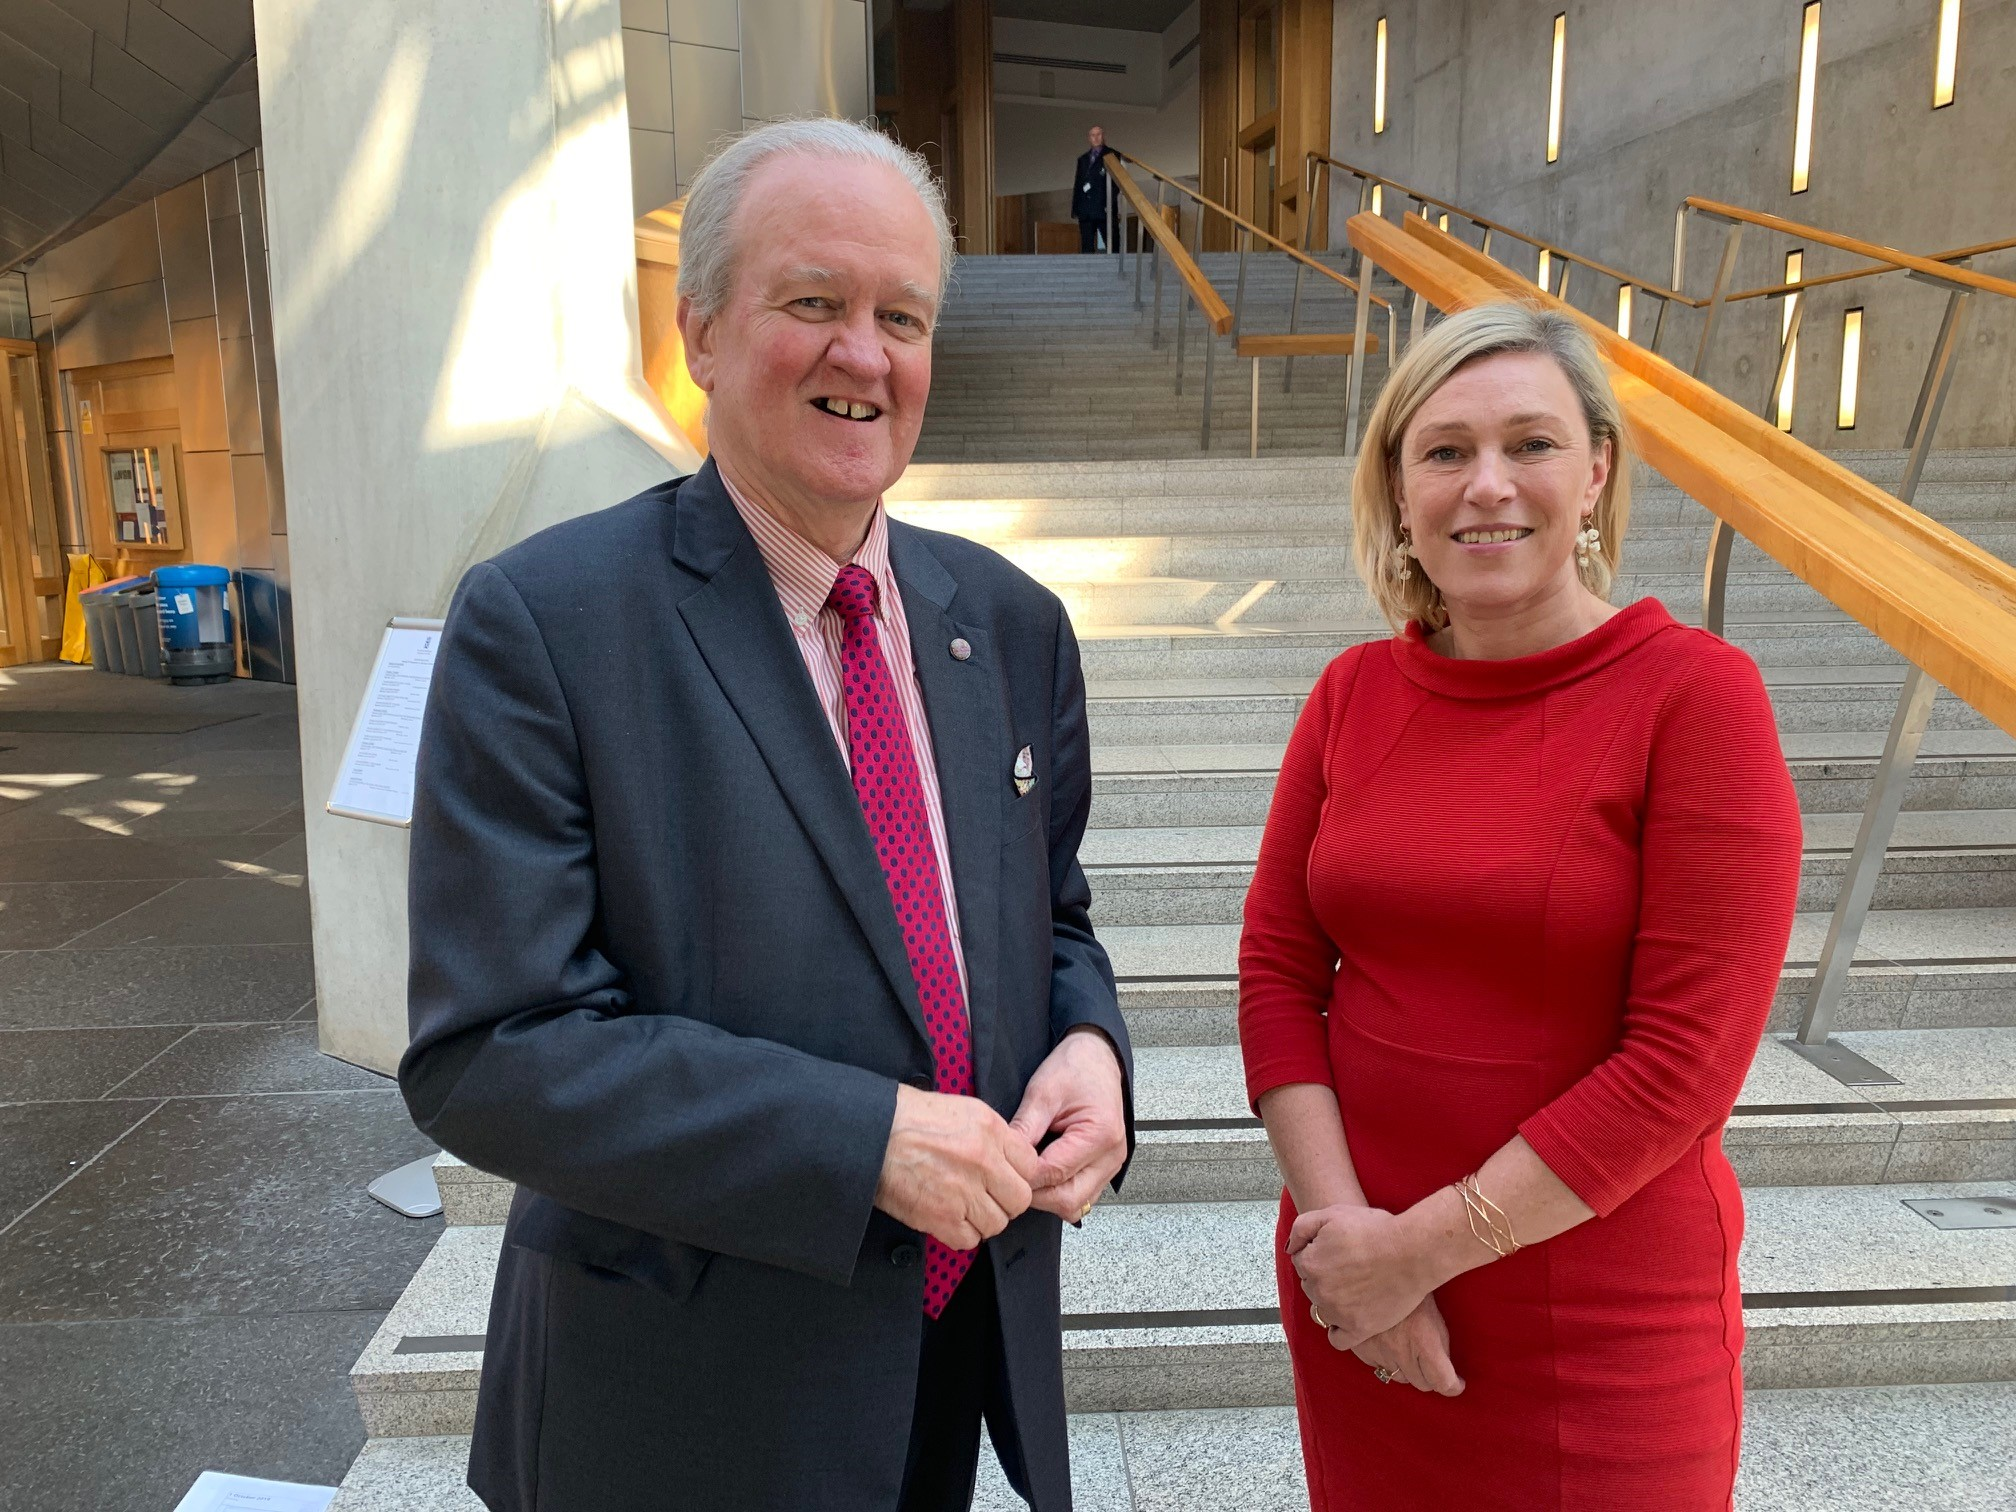 Gillian Martin and Stewart Stevenson have welcomed the investment